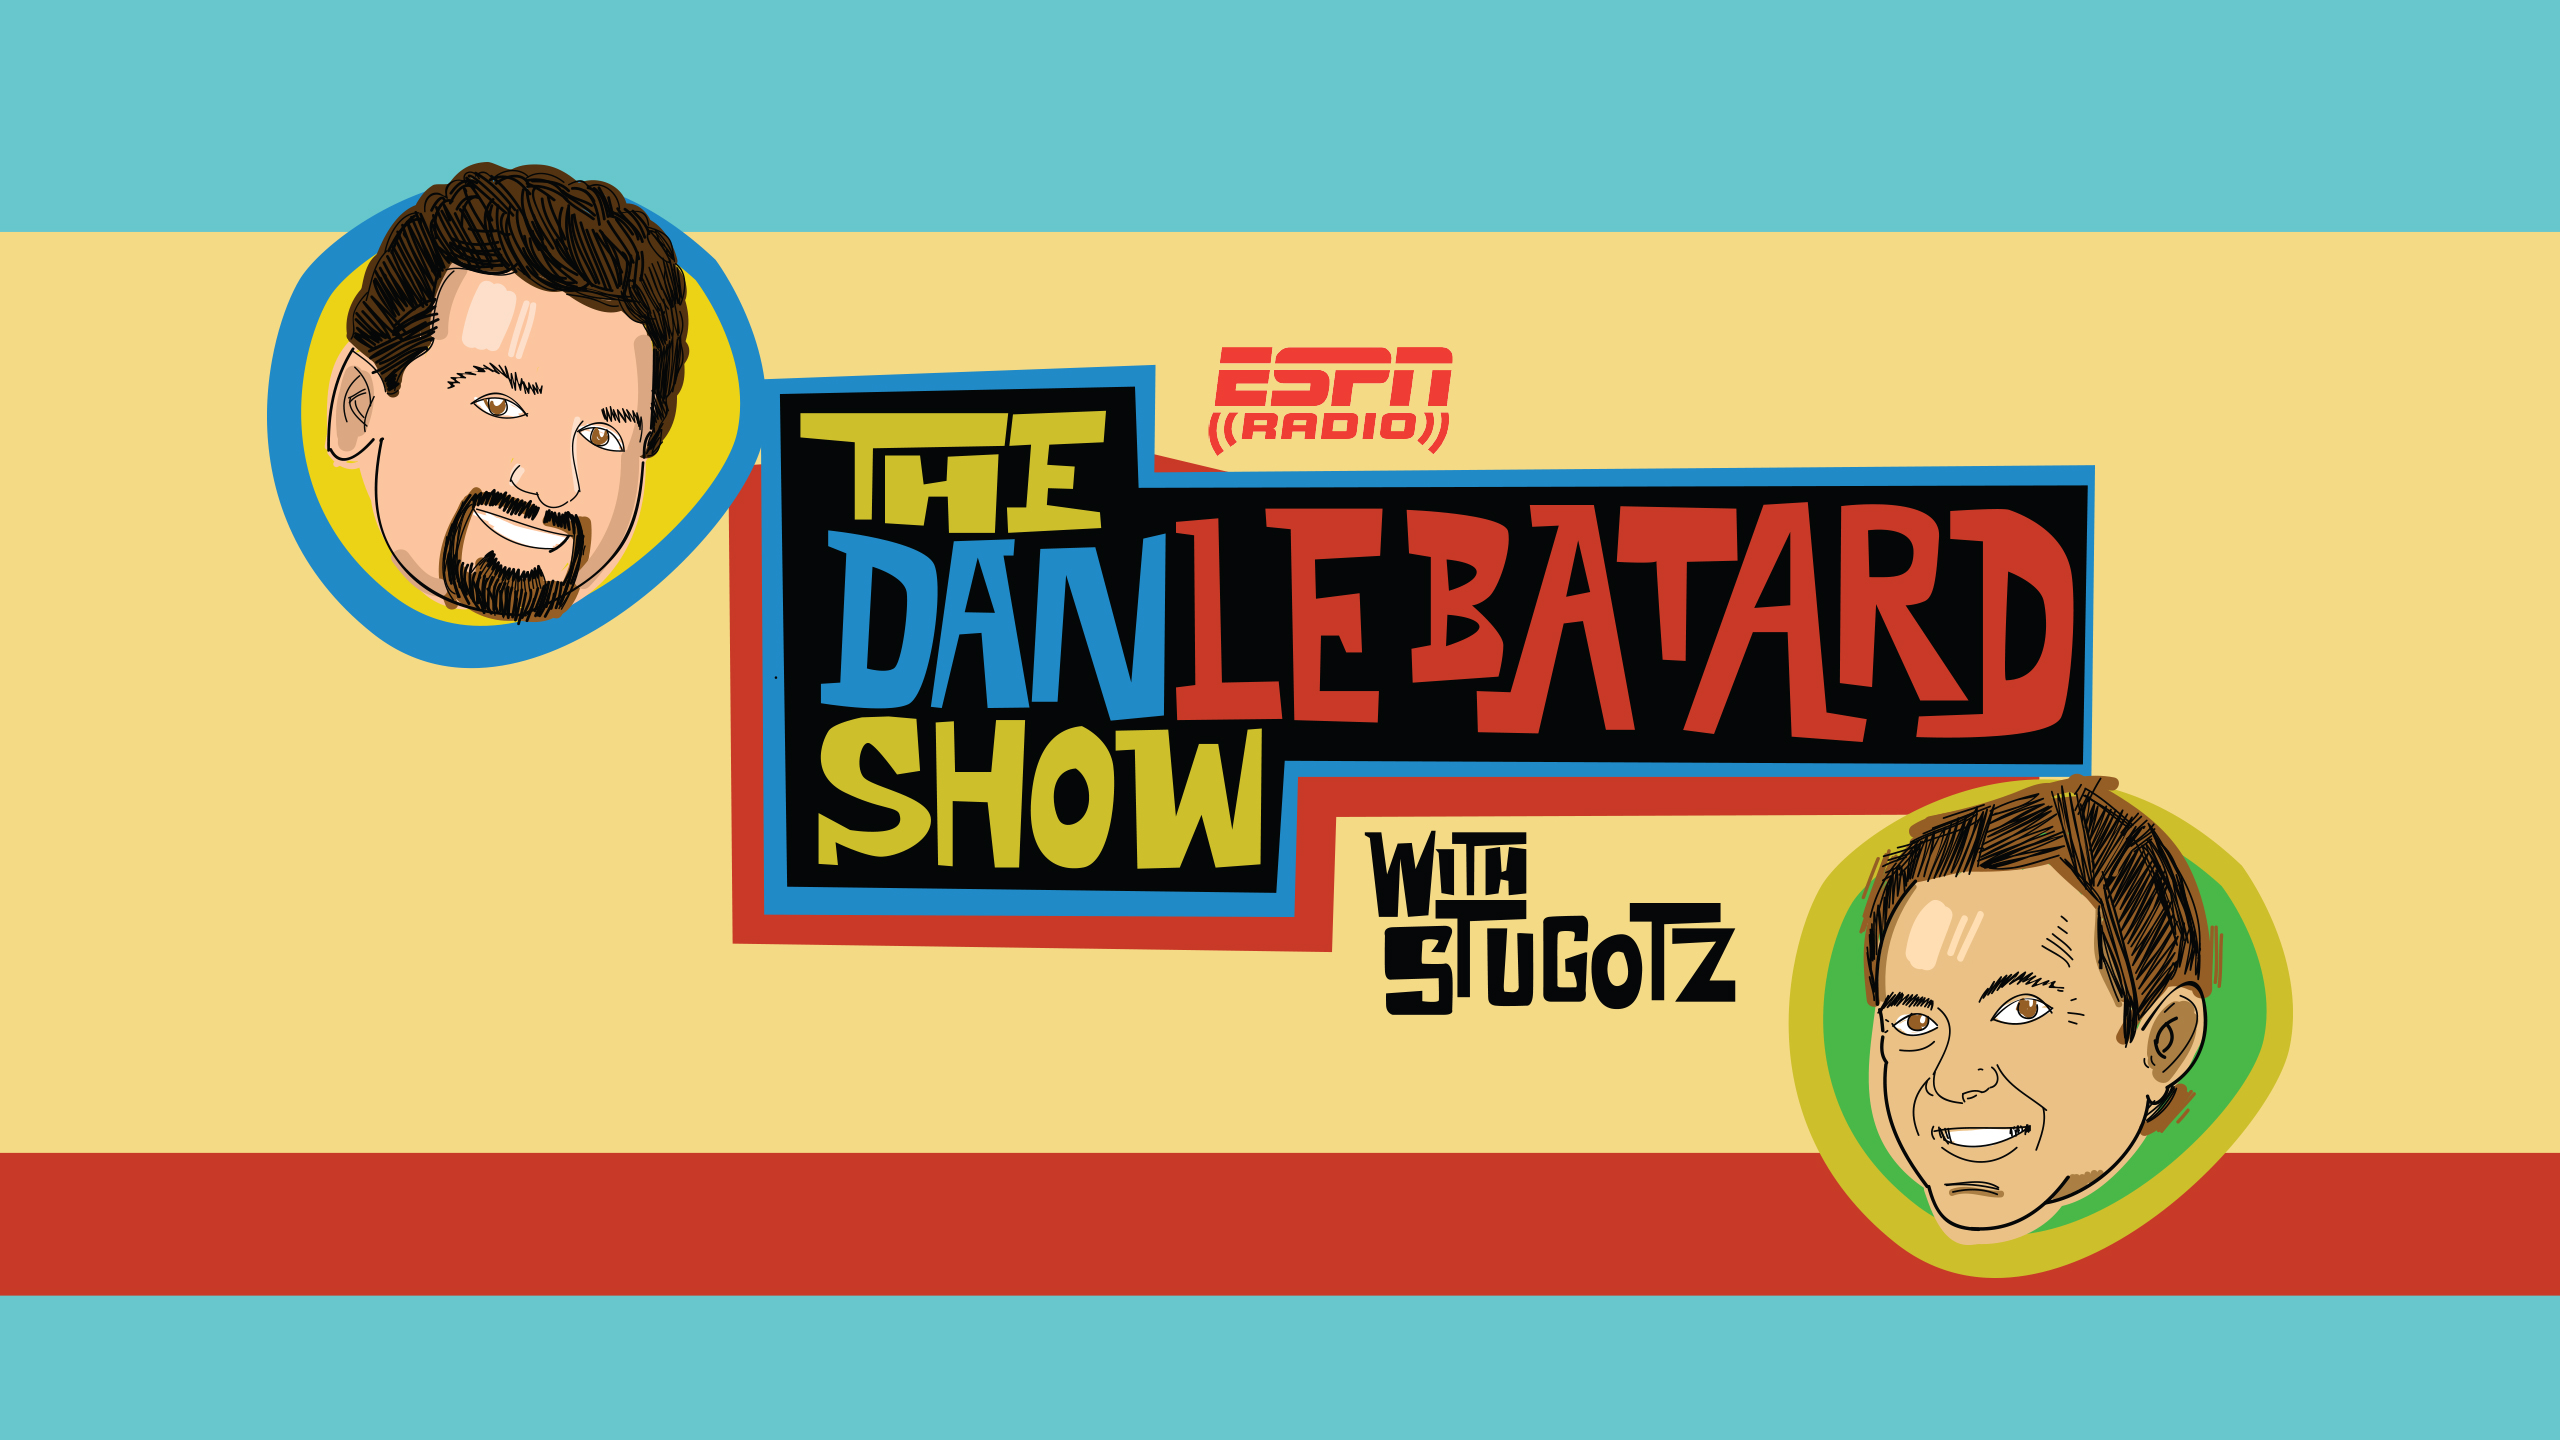 Wed, 12/12 - The Dan Le Batard Show with Stugotz Presented by Progressive